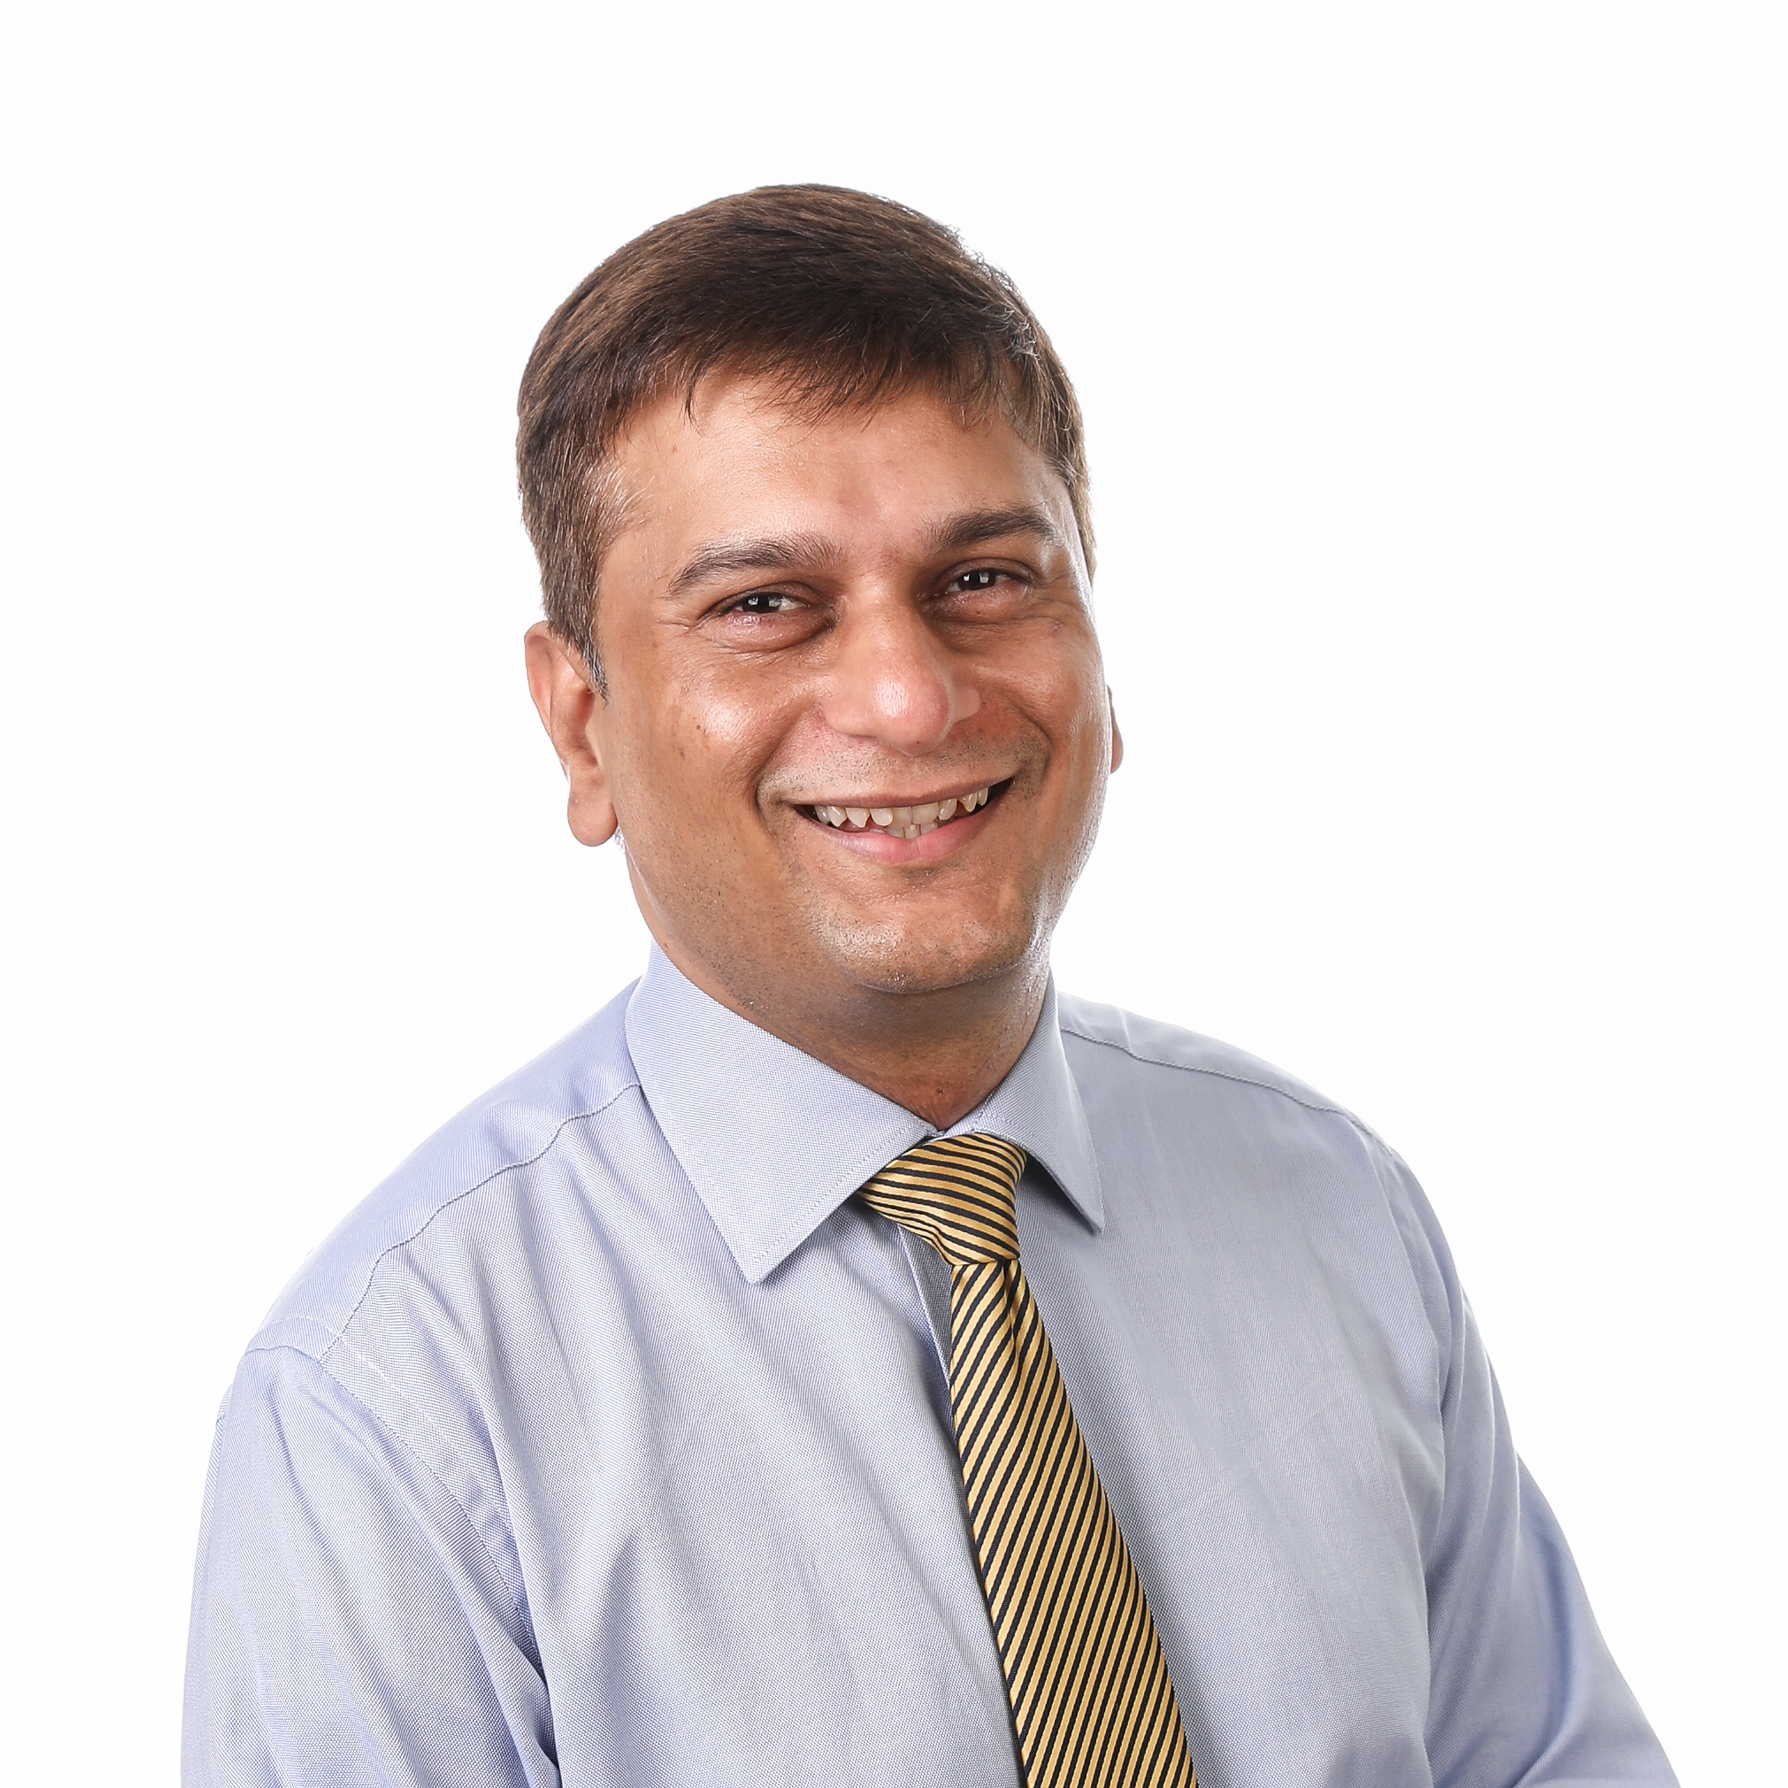 Nitin Pande, Customer Experience & Journeys Lead at DBS Bank